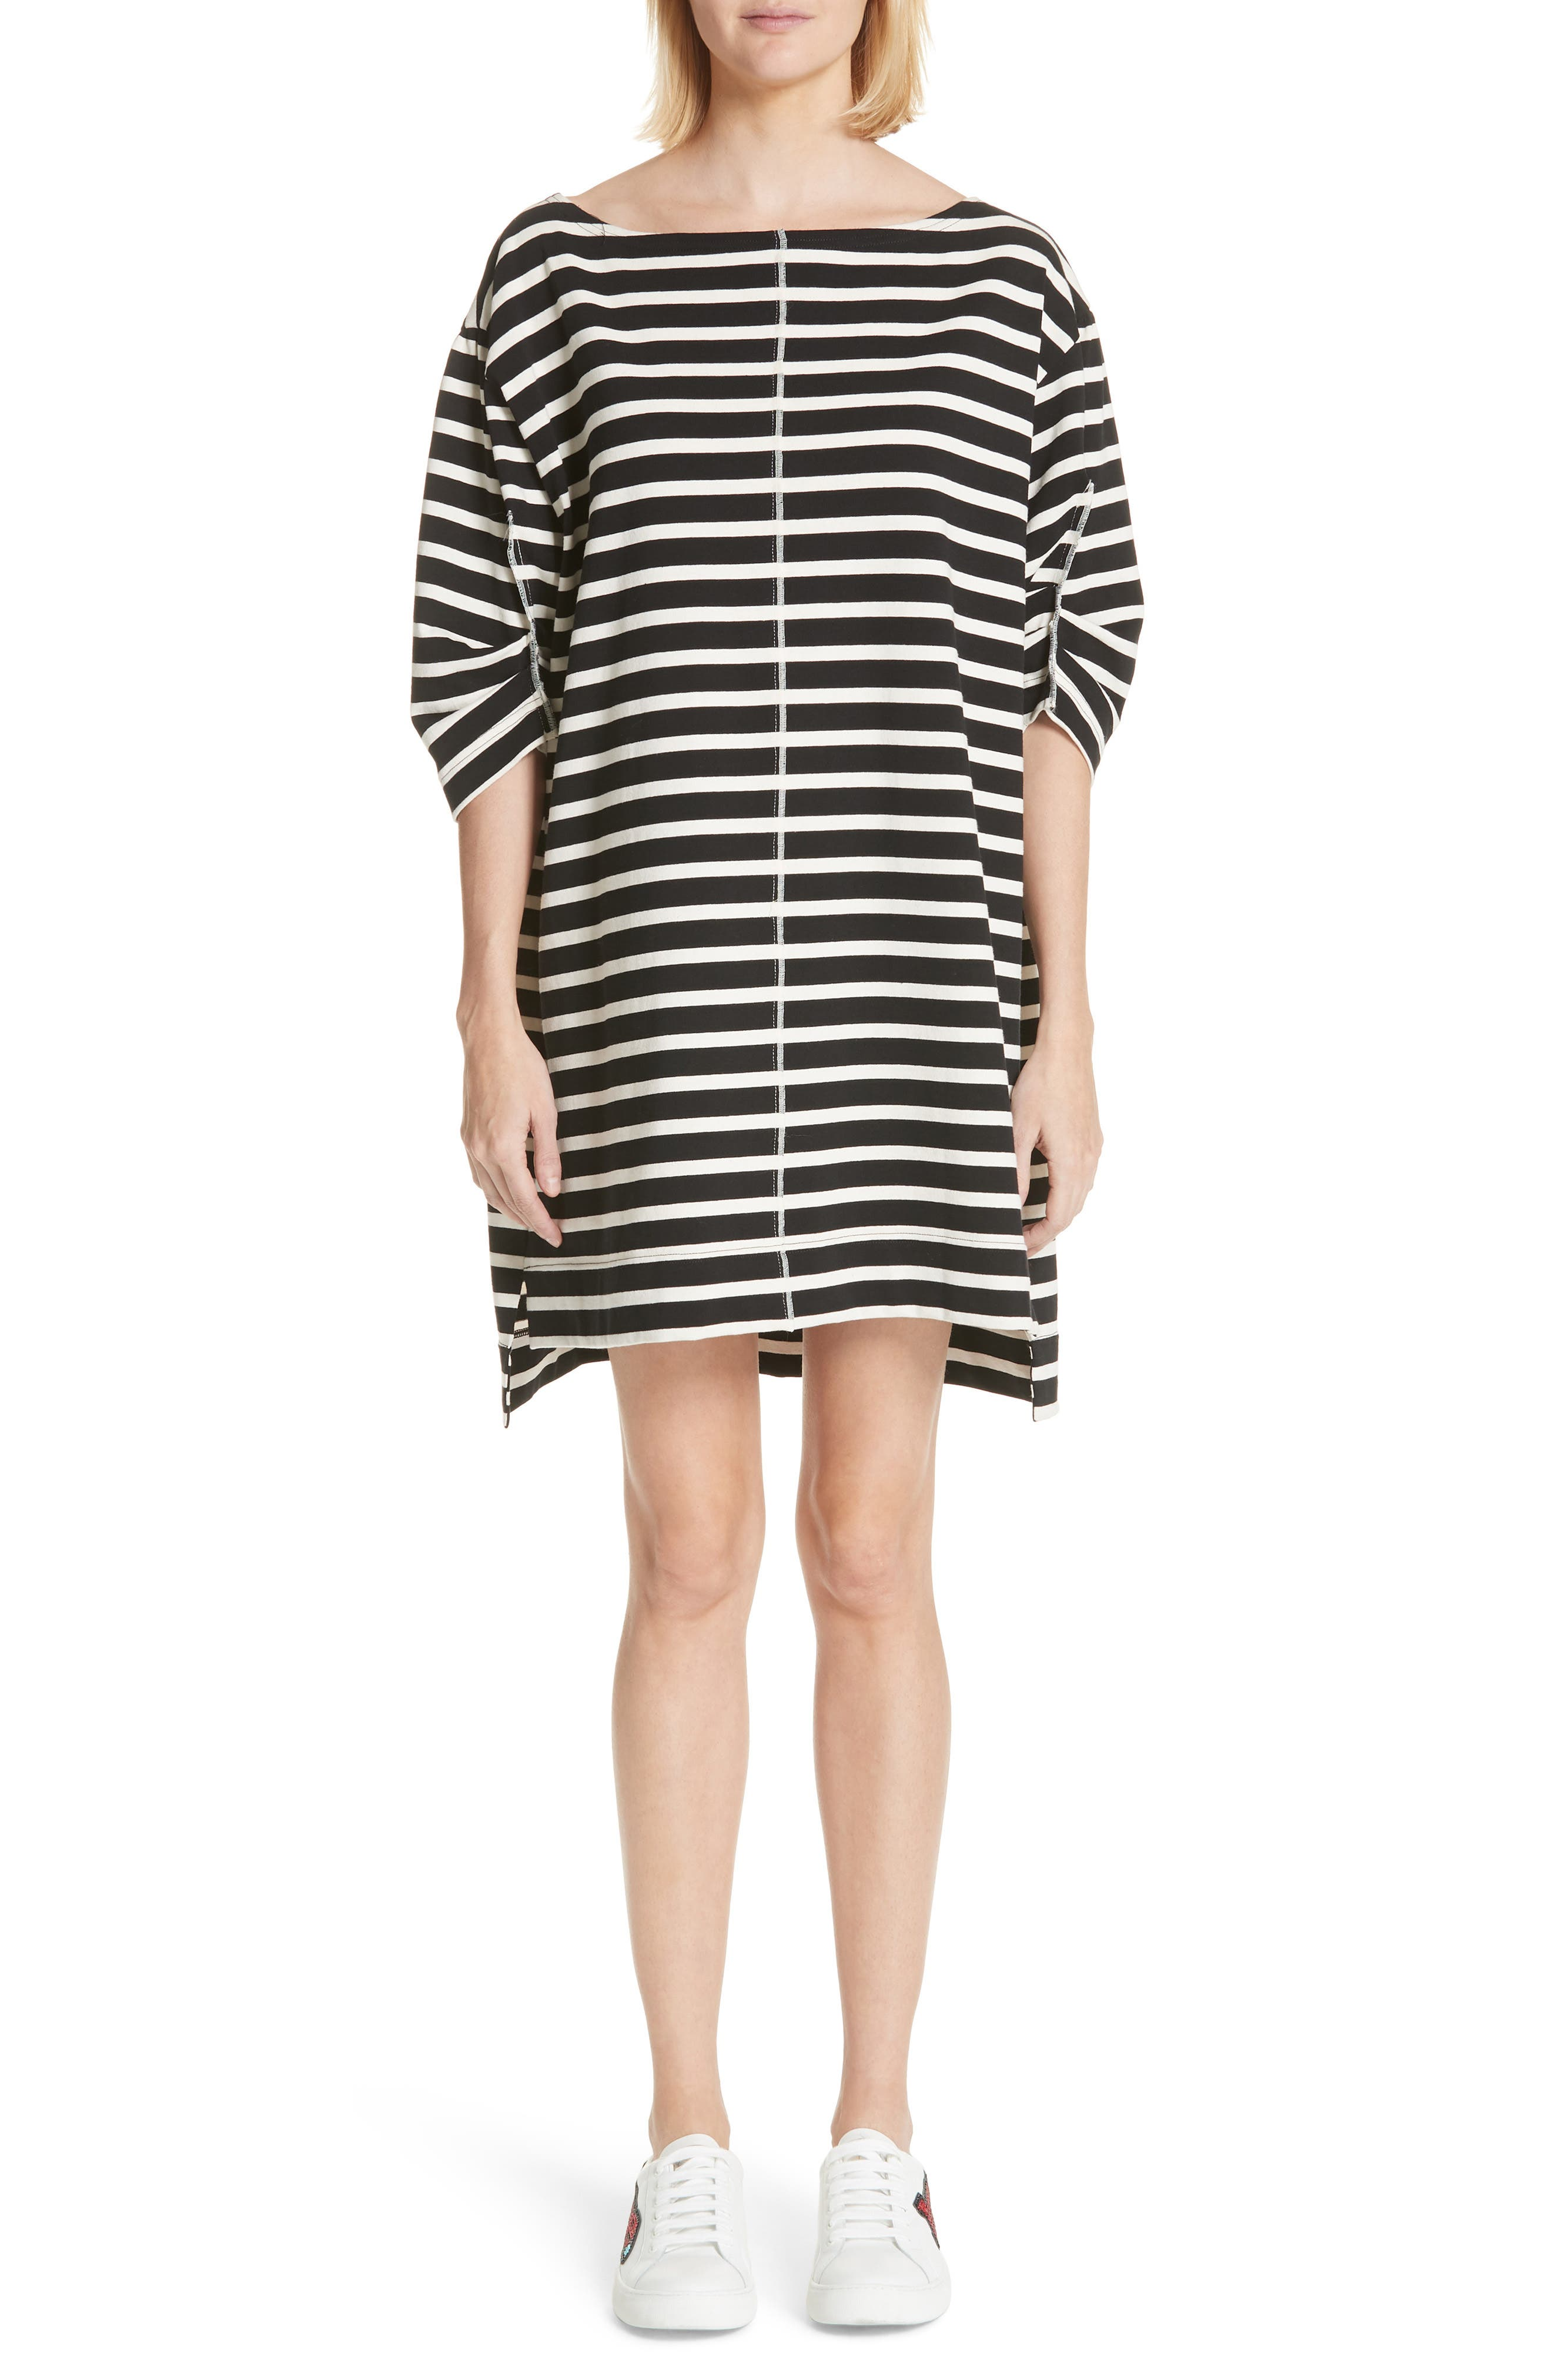 Marc Jacobs Stamped Stripe Dress, Black